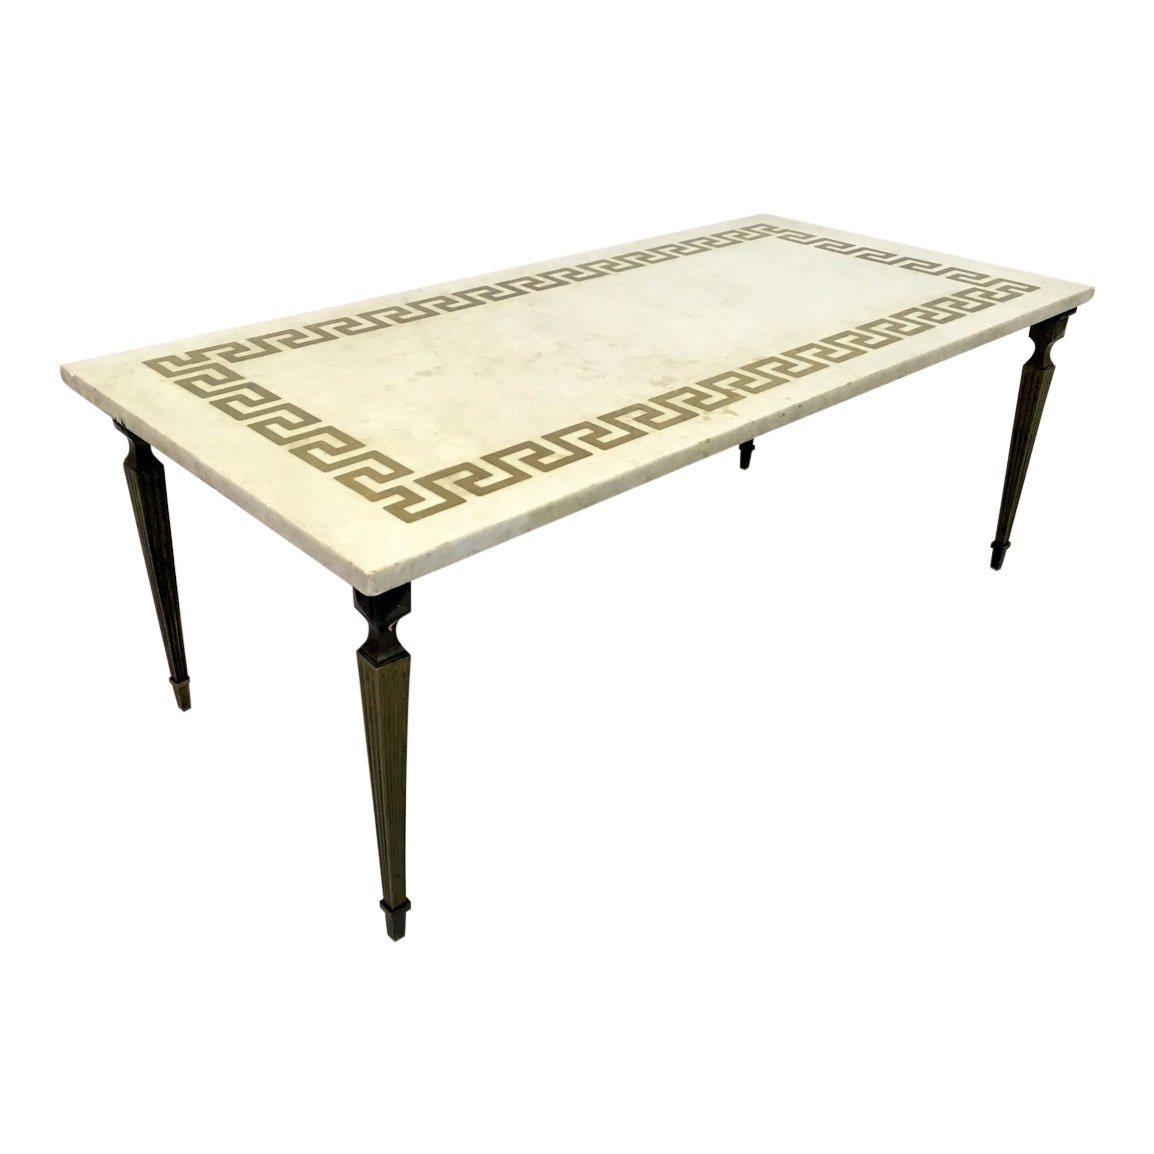 Marble Coffee Table For Sale Singapore: White Marble & Brass Coffee Table, 1950s For Sale At Pamono